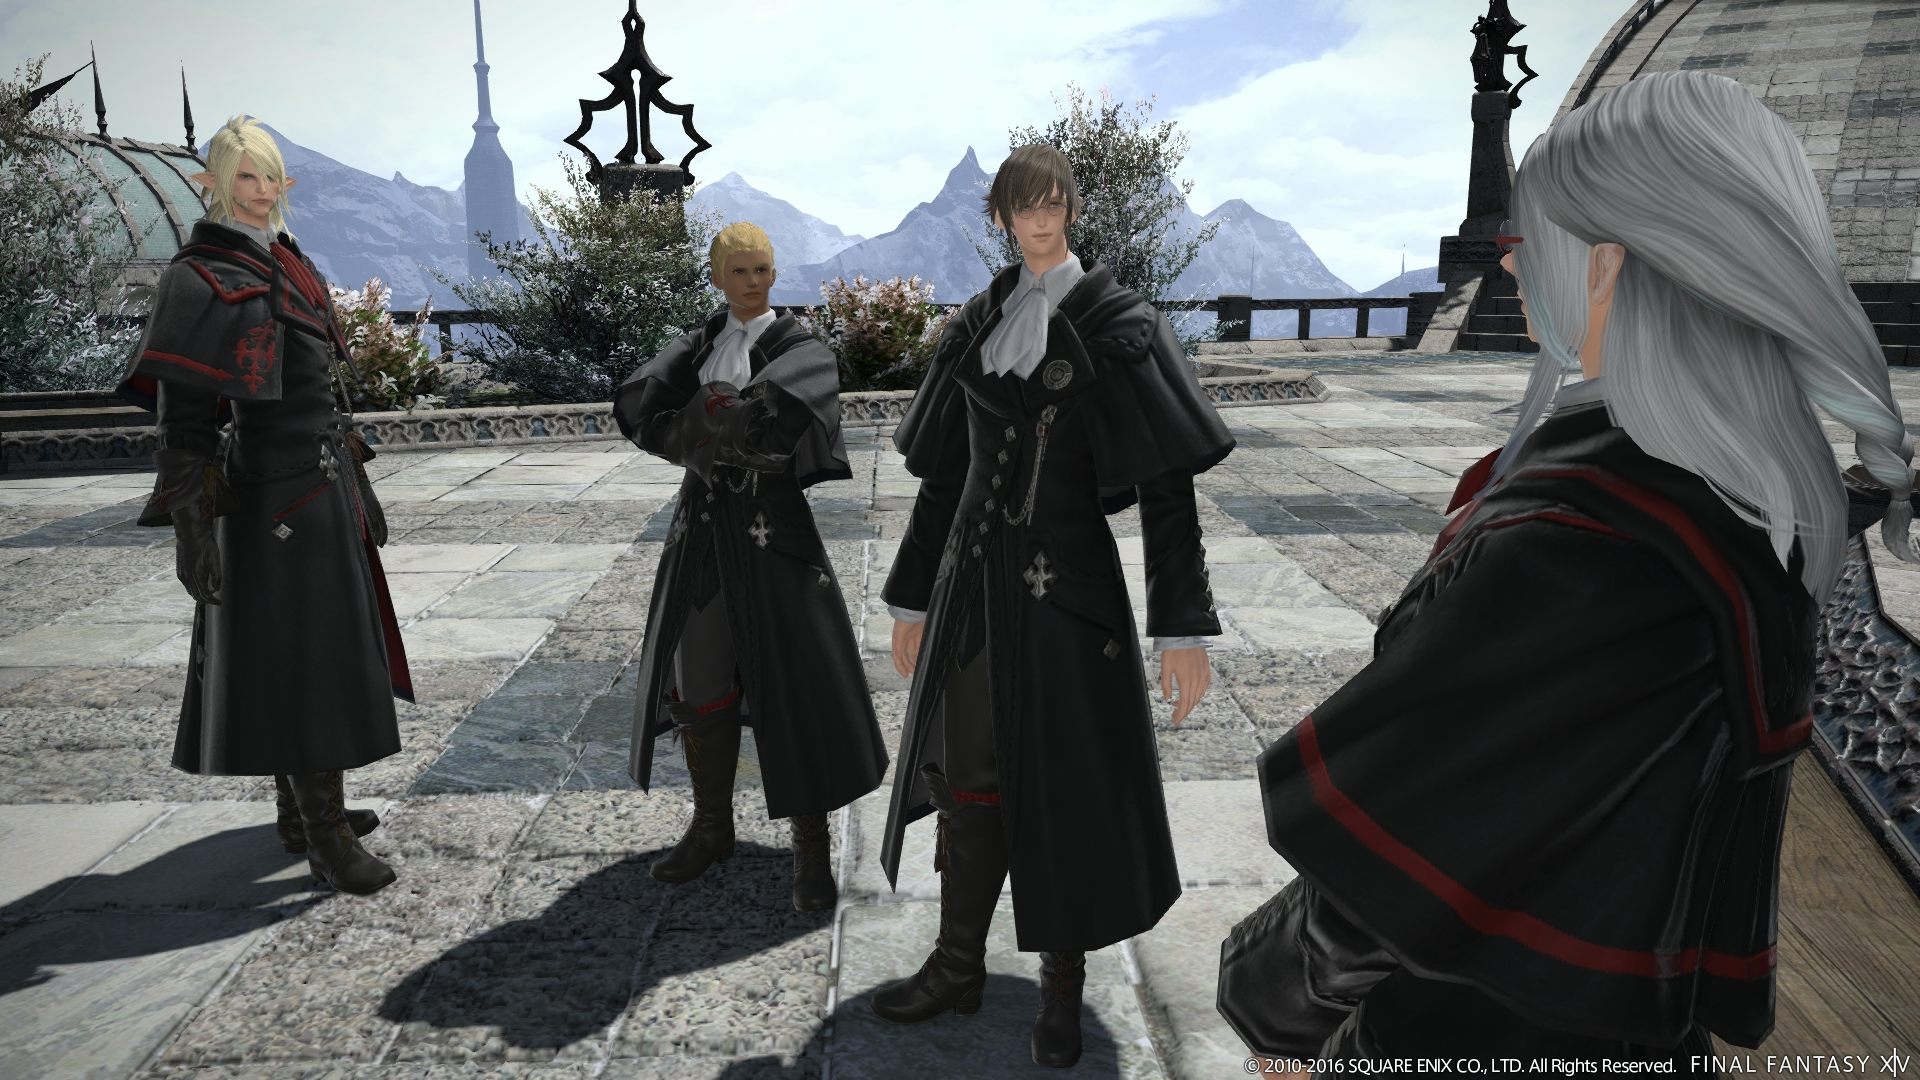 Review: Final Fantasy XIV Patch 5.1 Vows of Virtue, Deeds